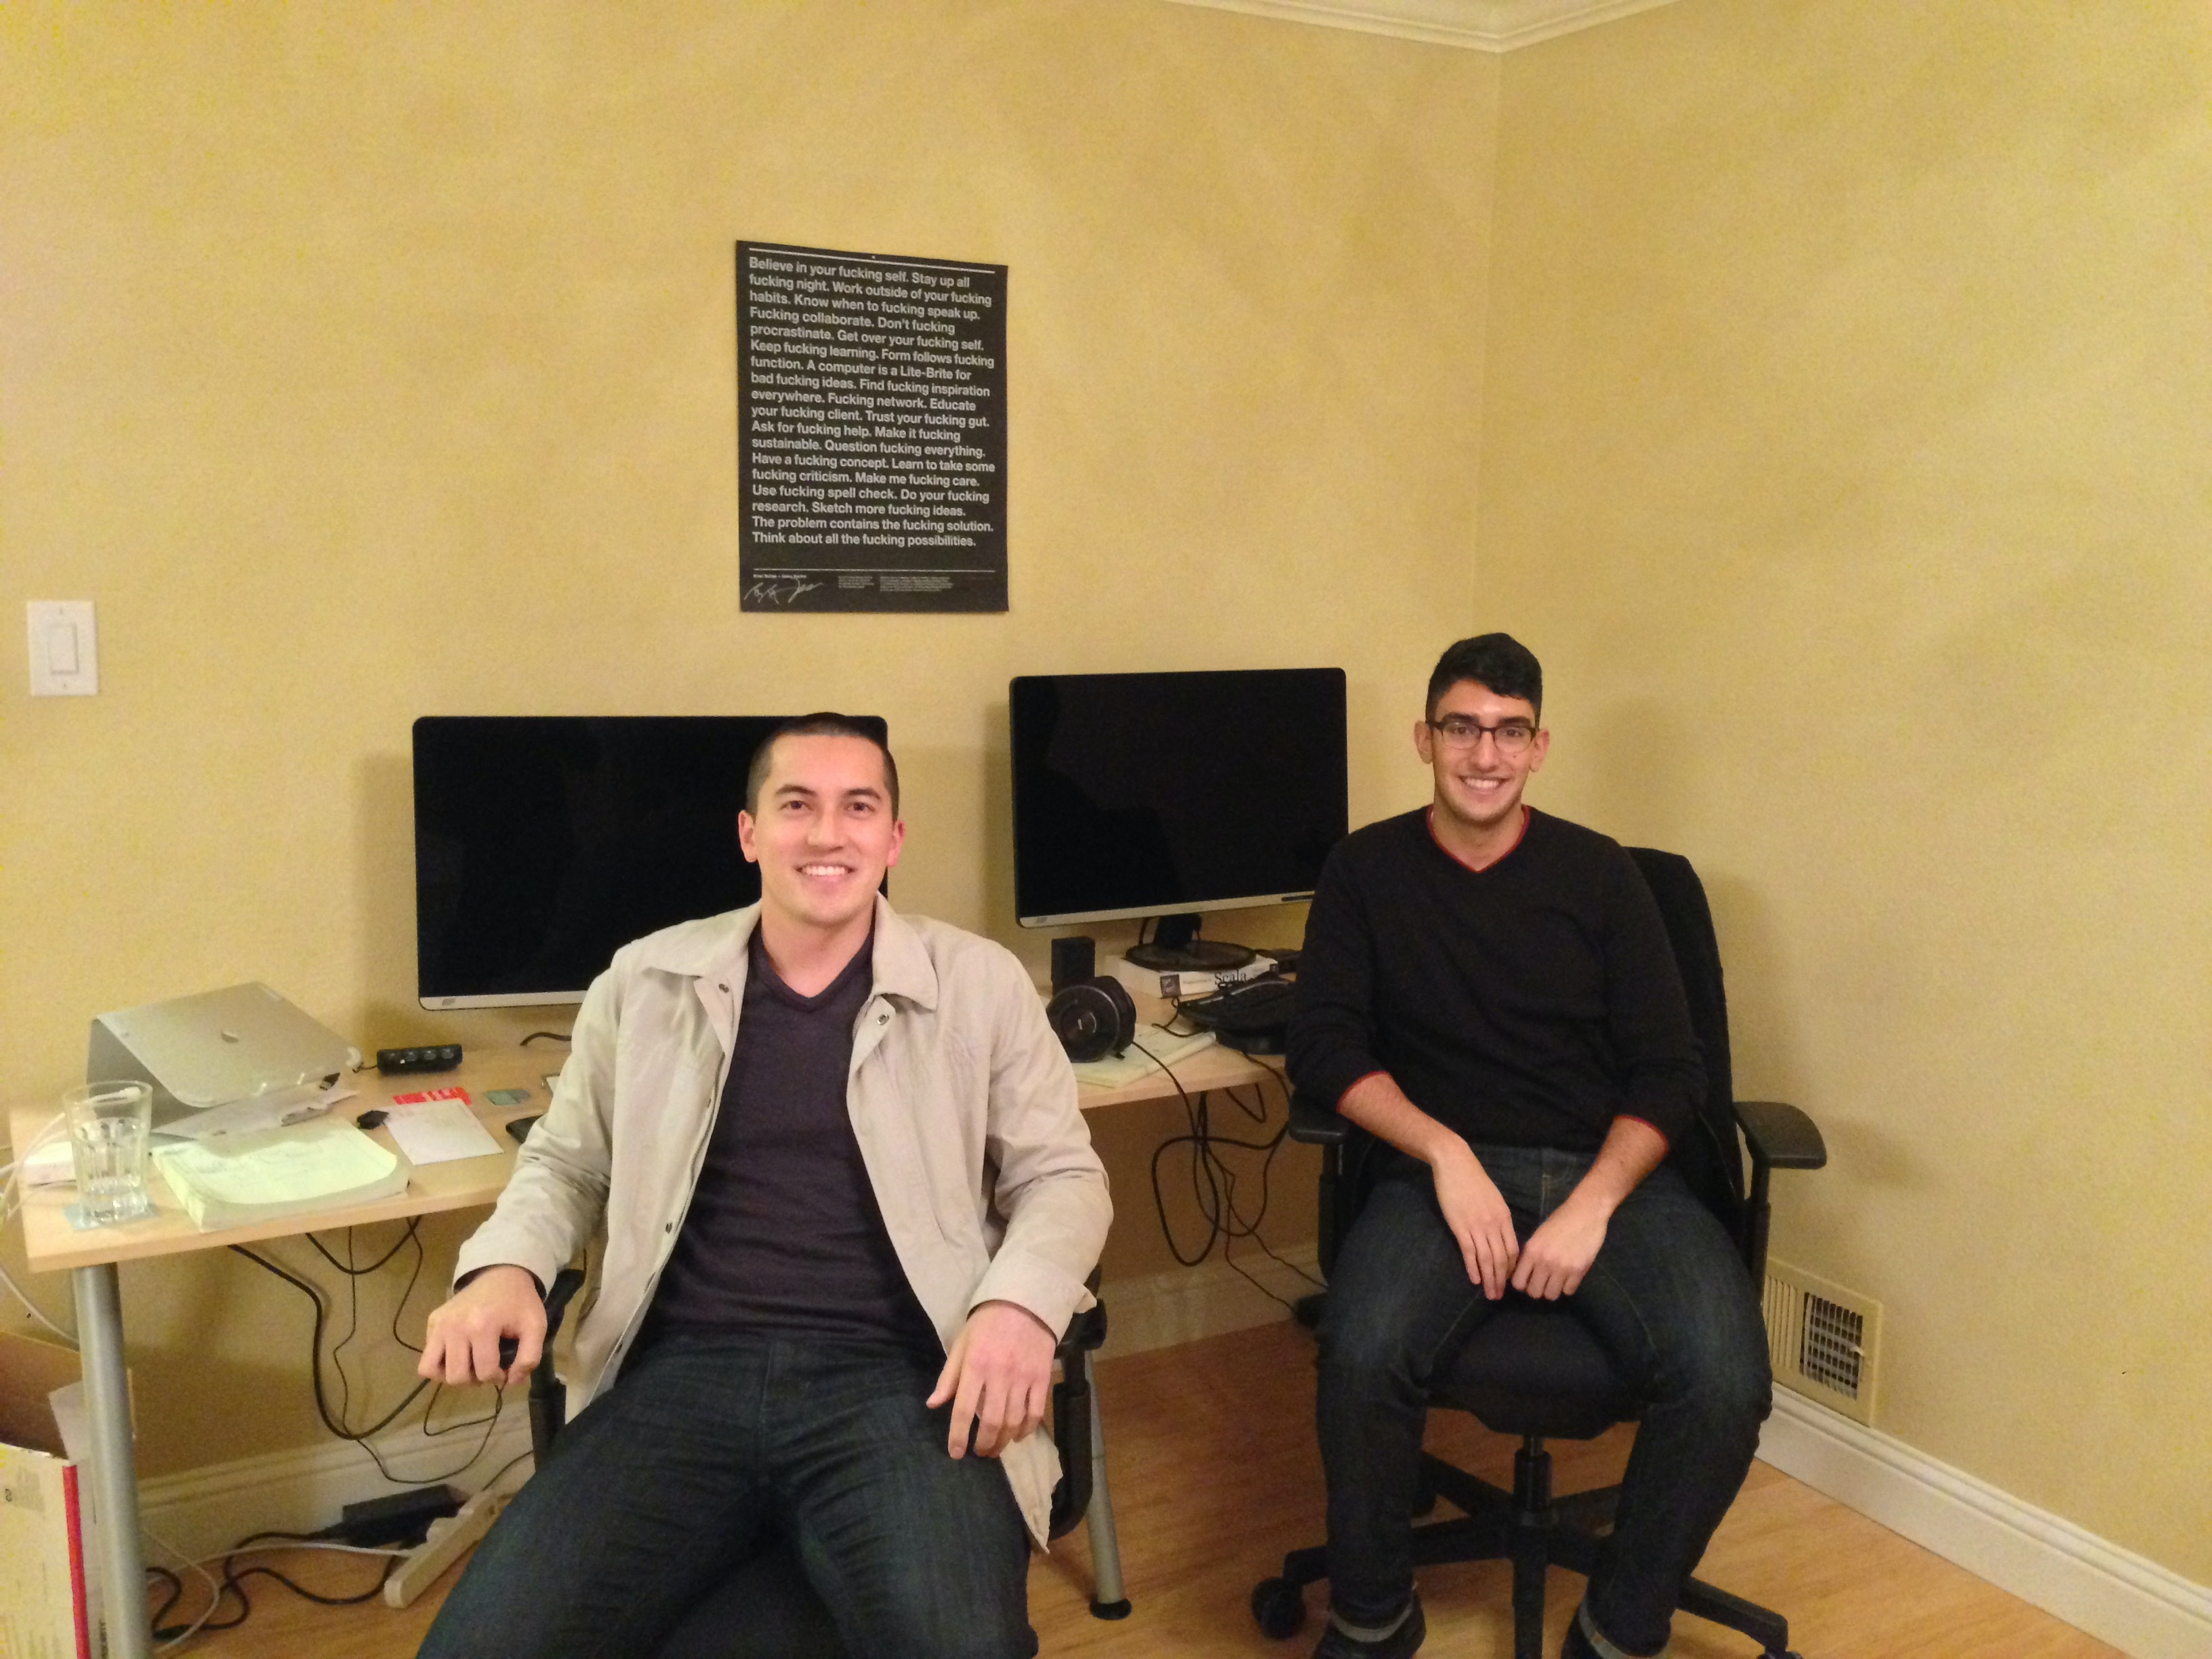 HashiCorp was founded in 2012 by Mitchell Hashimoto and Armon Dadgar. Until 2014, they were the only employees and worked out of the company's first HQ, Armon's living room.